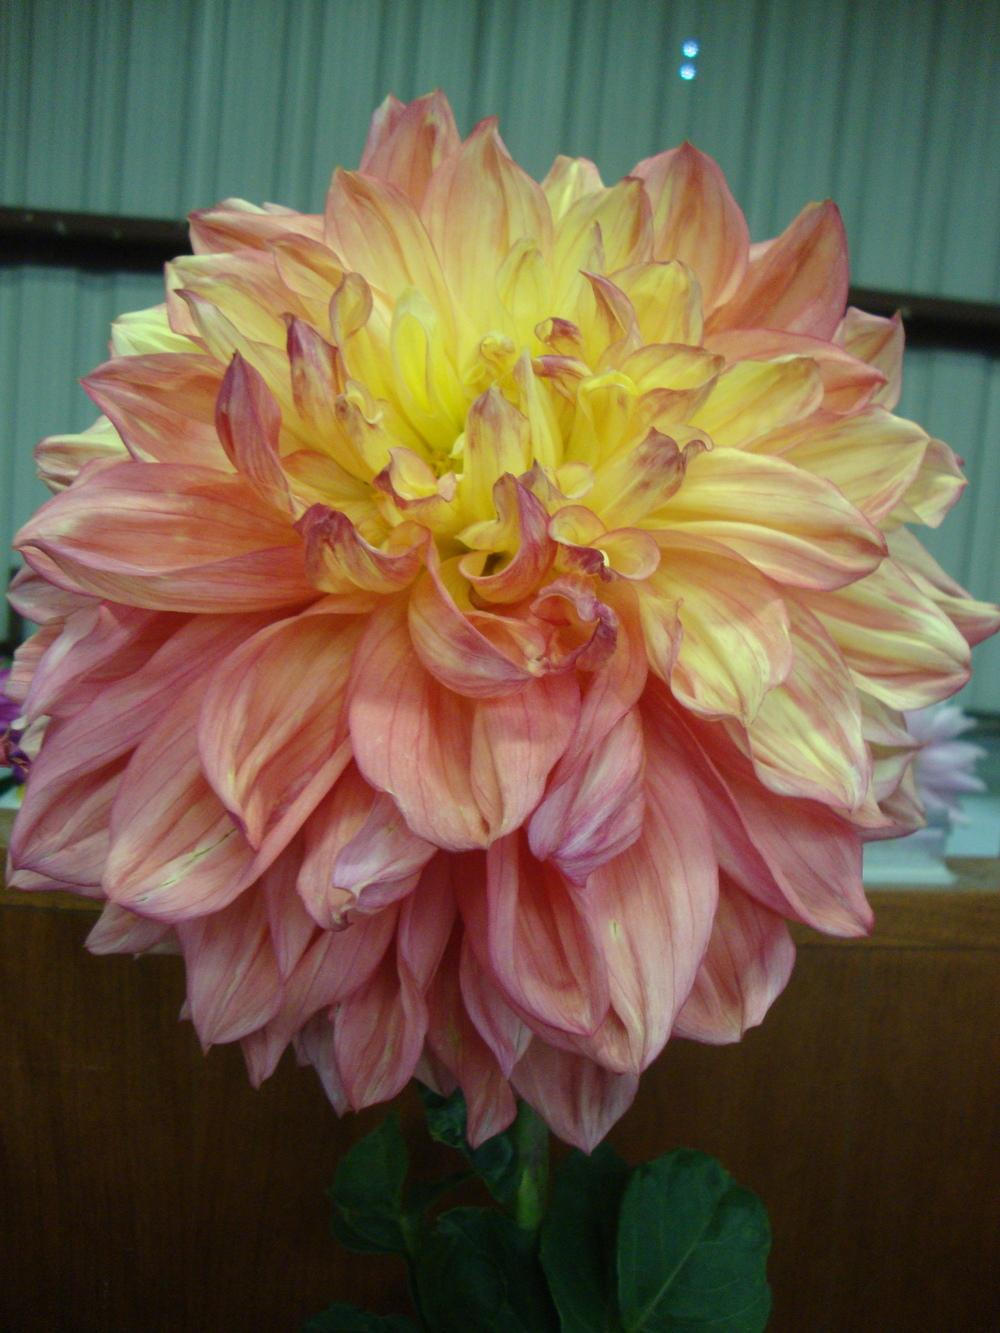 Photo of Dahlia 'Wanda's Aurora' uploaded by Paul2032